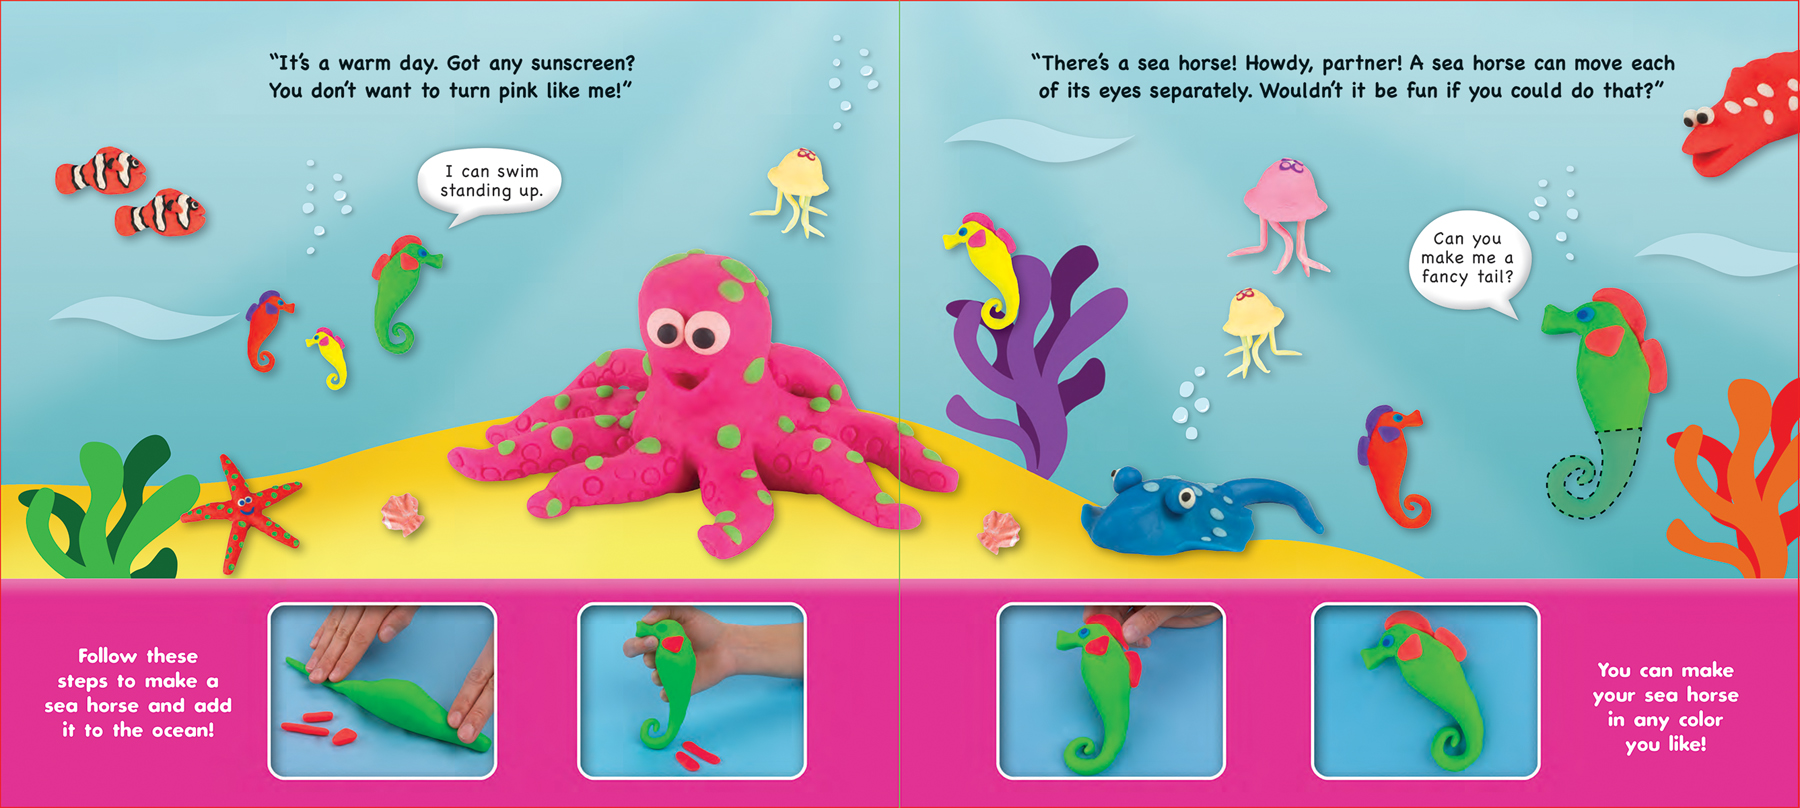 Play-Doh Under the Sea Hands On Learning Book from Silver Dolphin Books | Play-Doh Learning Book Review from Mom Does Reviews | #MomDoesReviews | MomDoesReviews.com